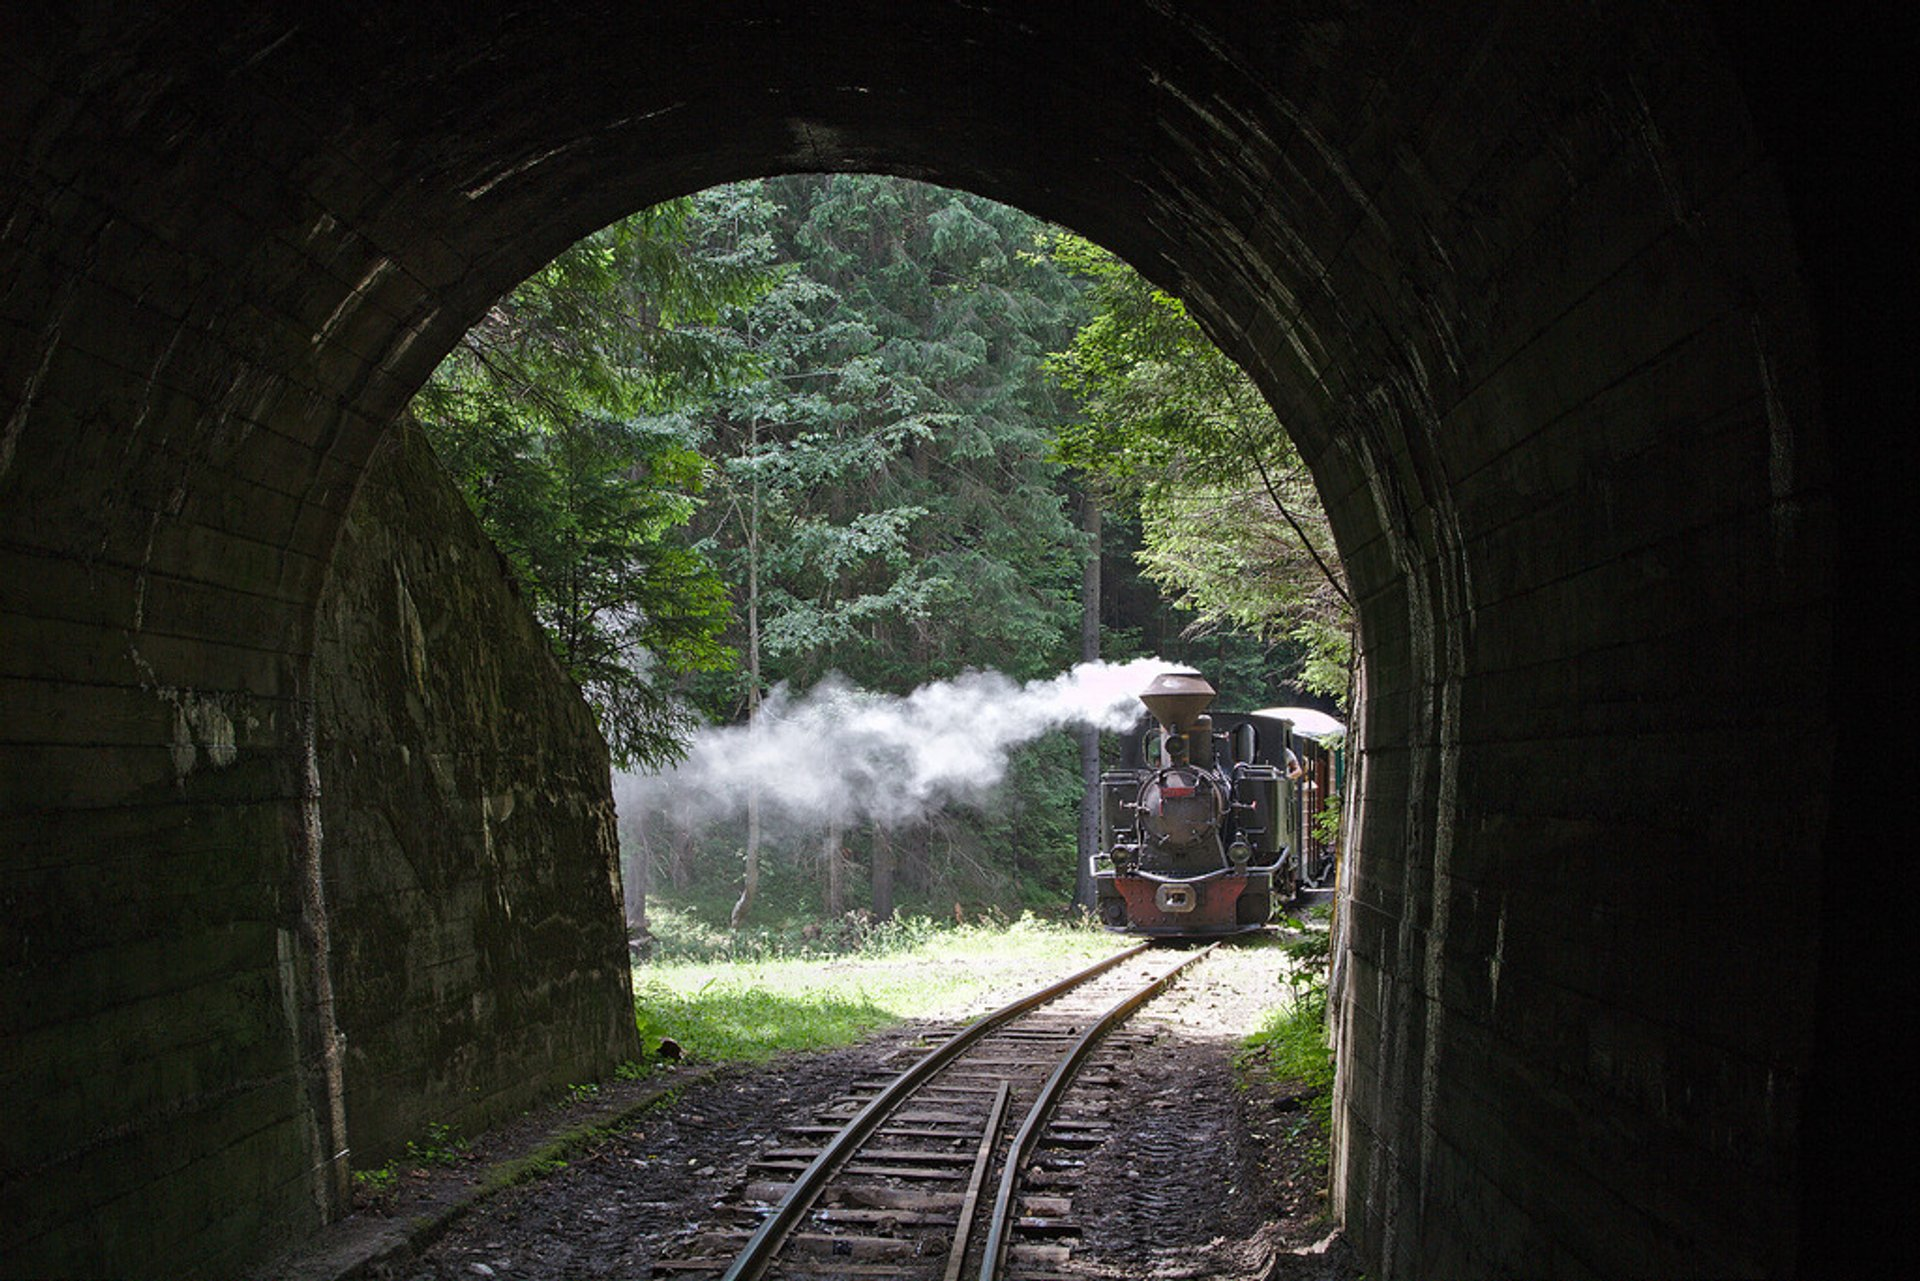 Before entering the third of three tunnels along the Vaser valley railway, near Botizu loading site 2020